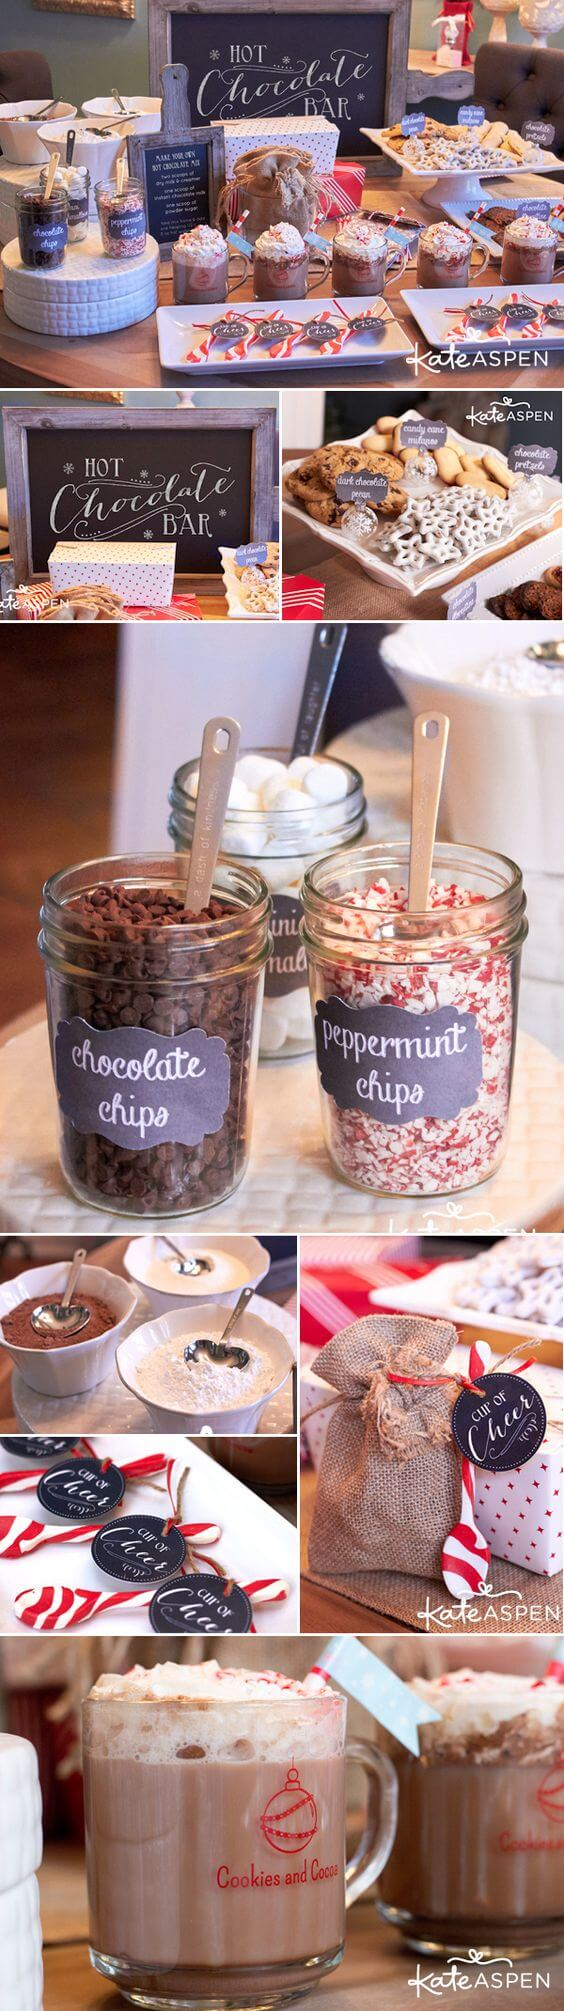 Image of the ultimate hot chocolate bar